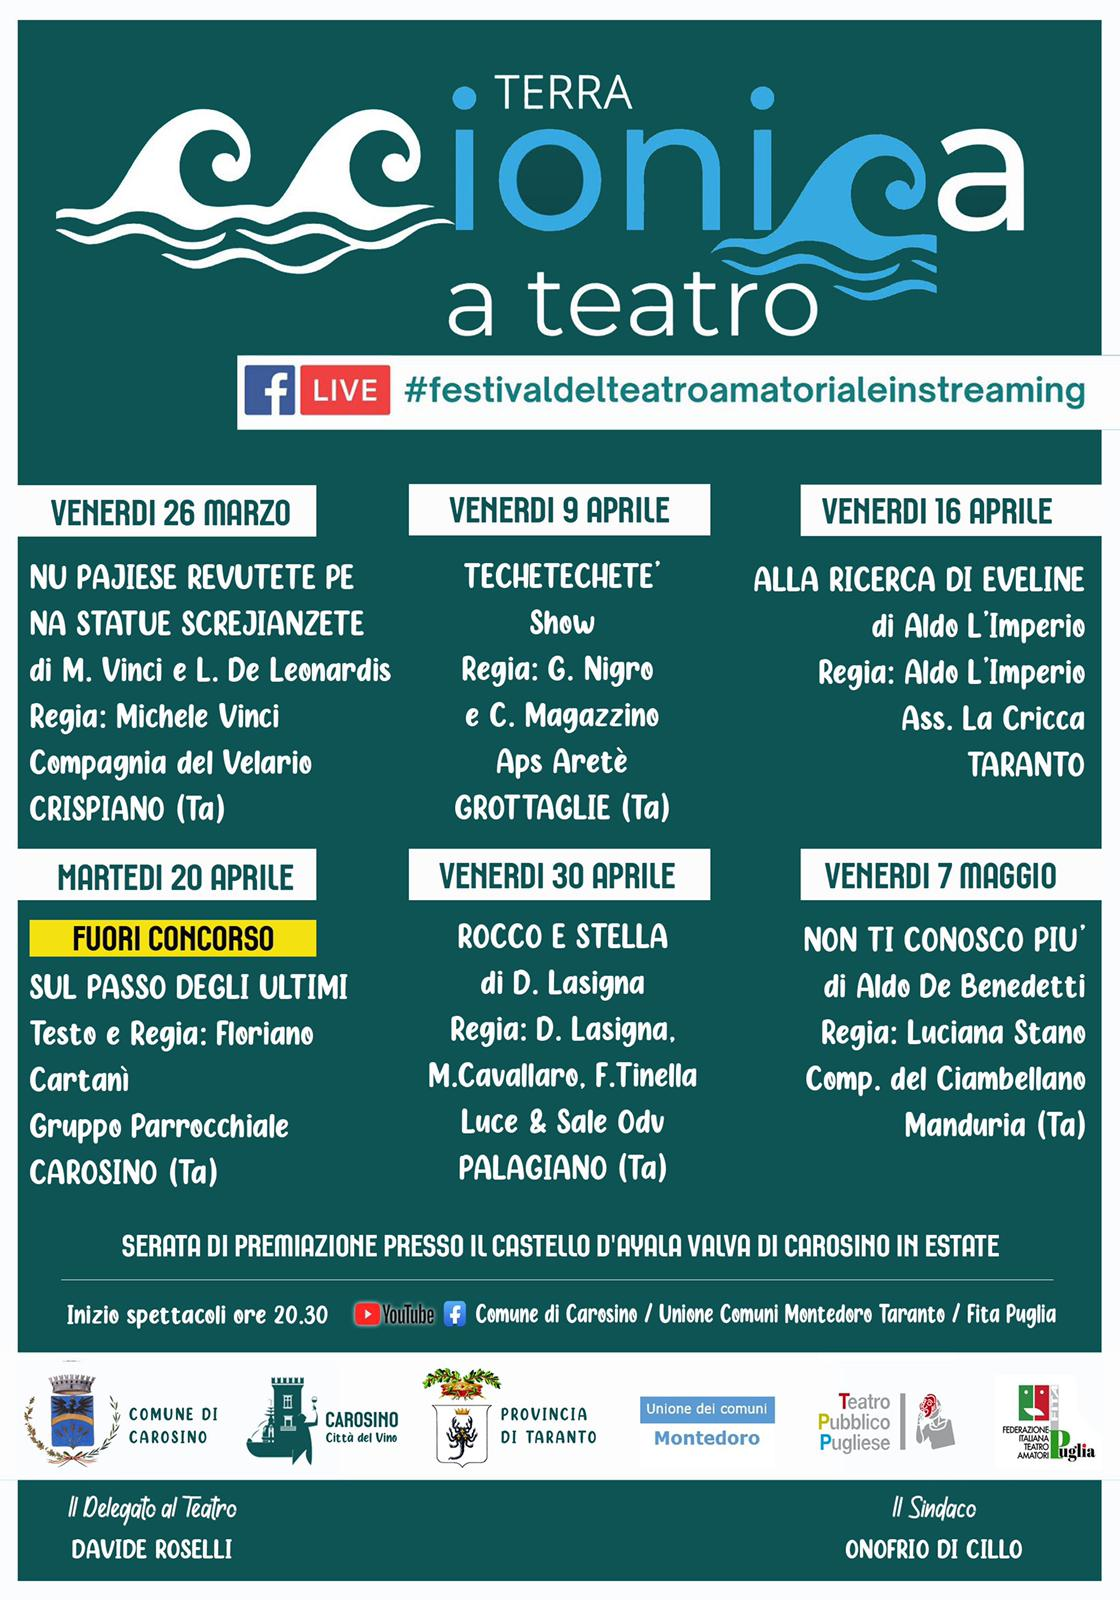 FESTIVAL DEL TEATRO AMATORIALE IN STREAMING